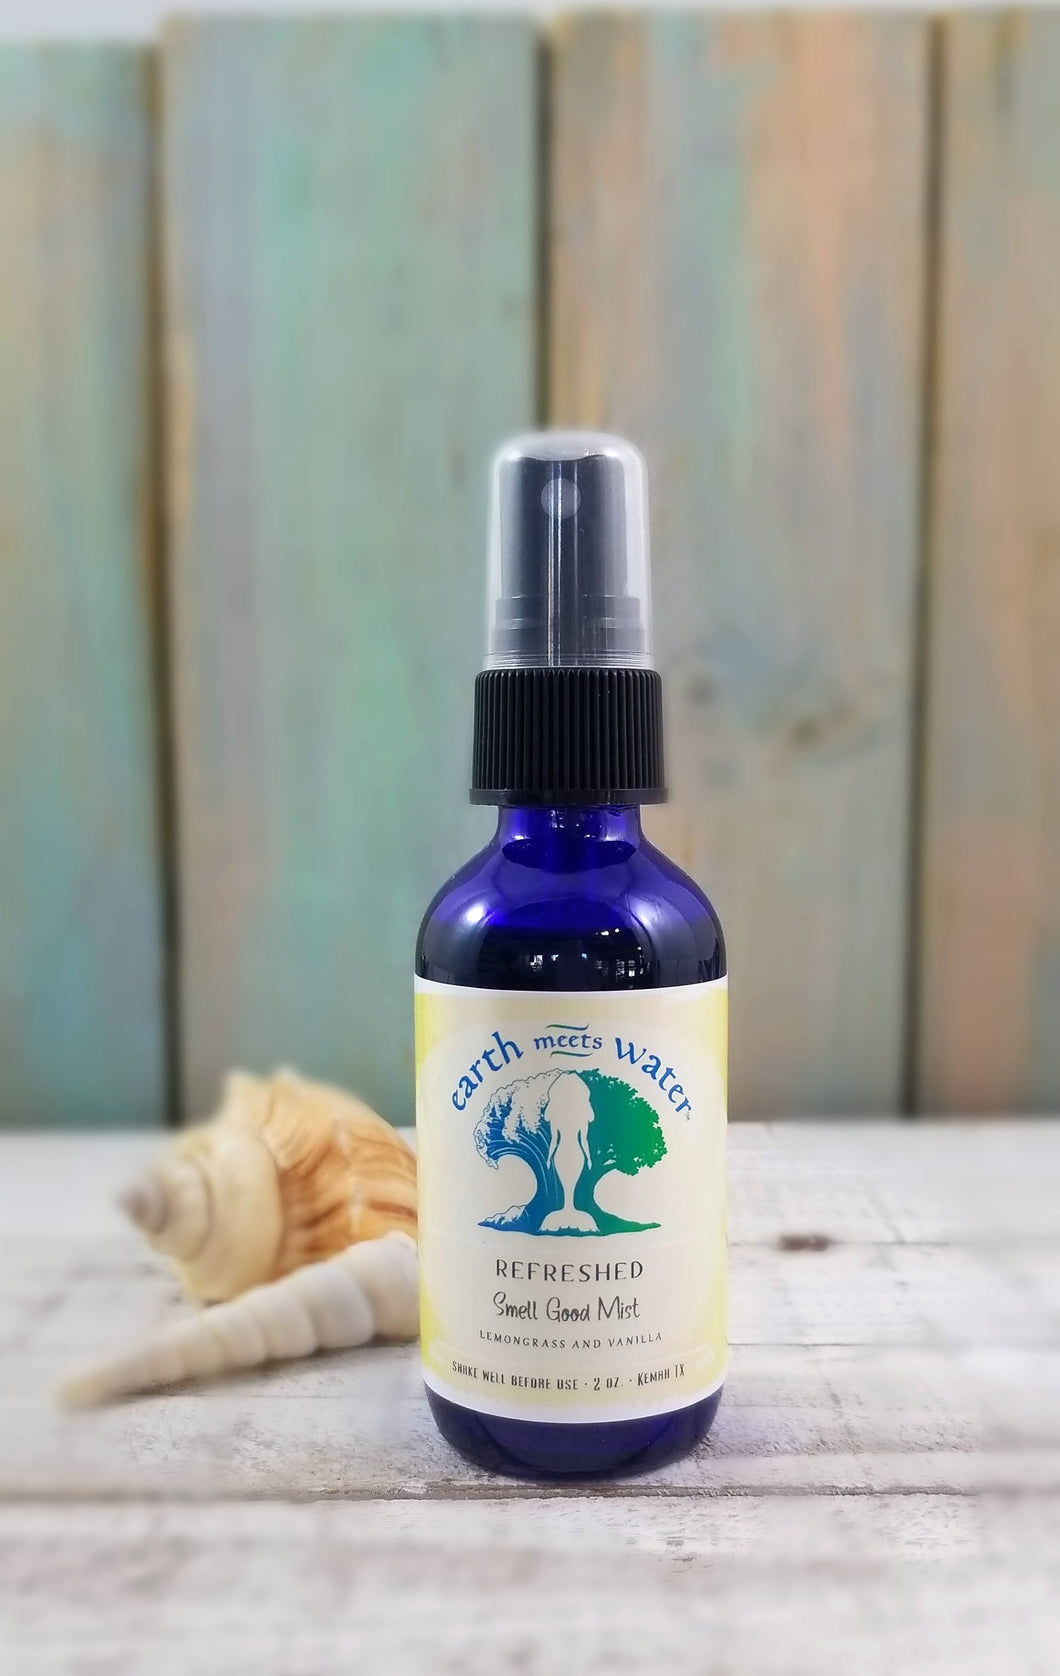 Refreshed- Smell Good Mist